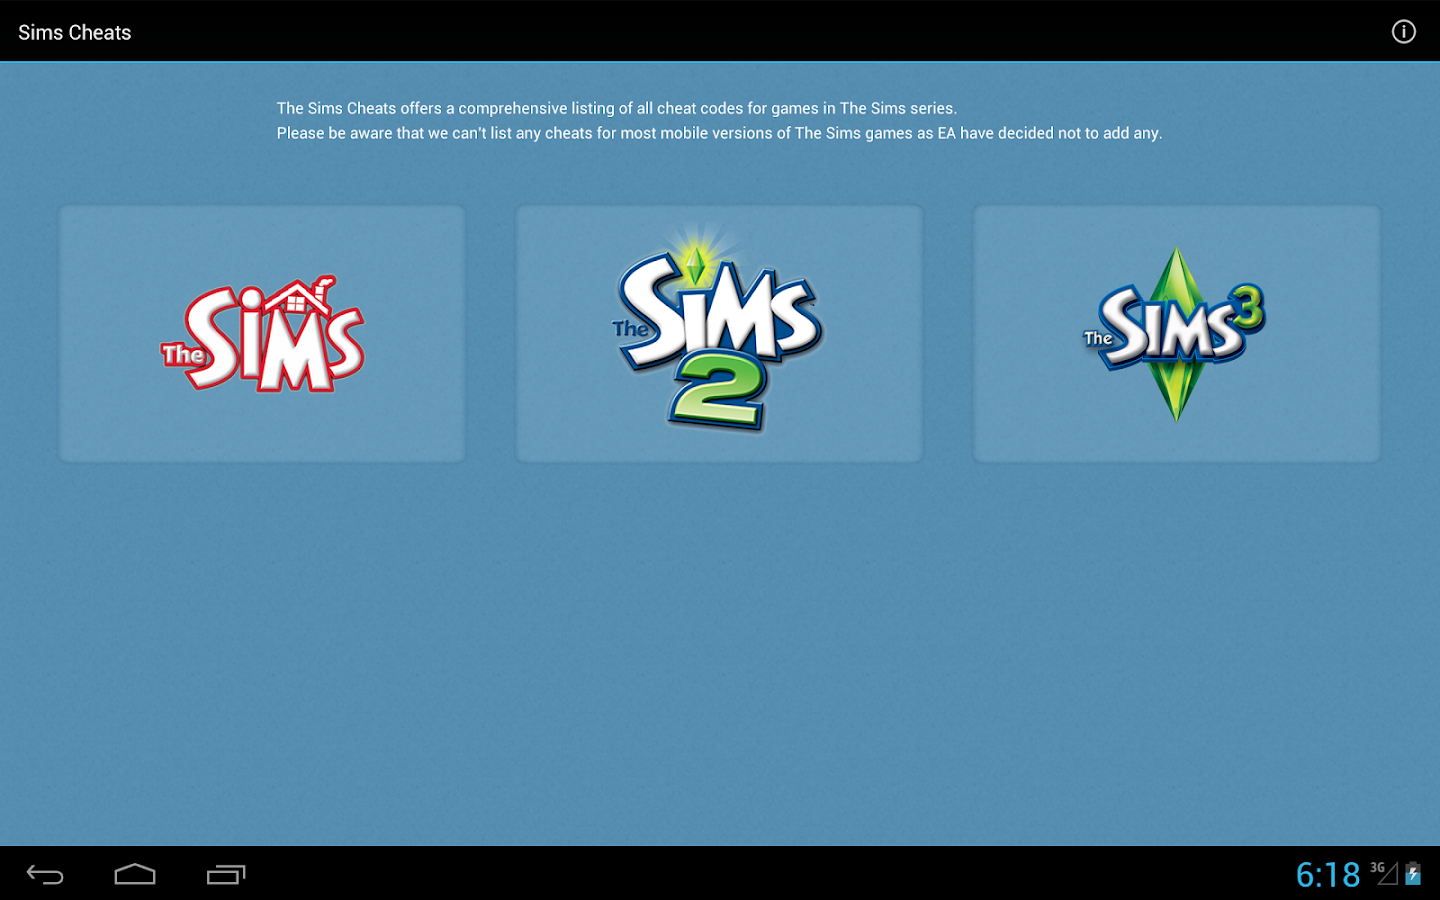 Cheats for The Sims 1, 2 and 3 - screenshot